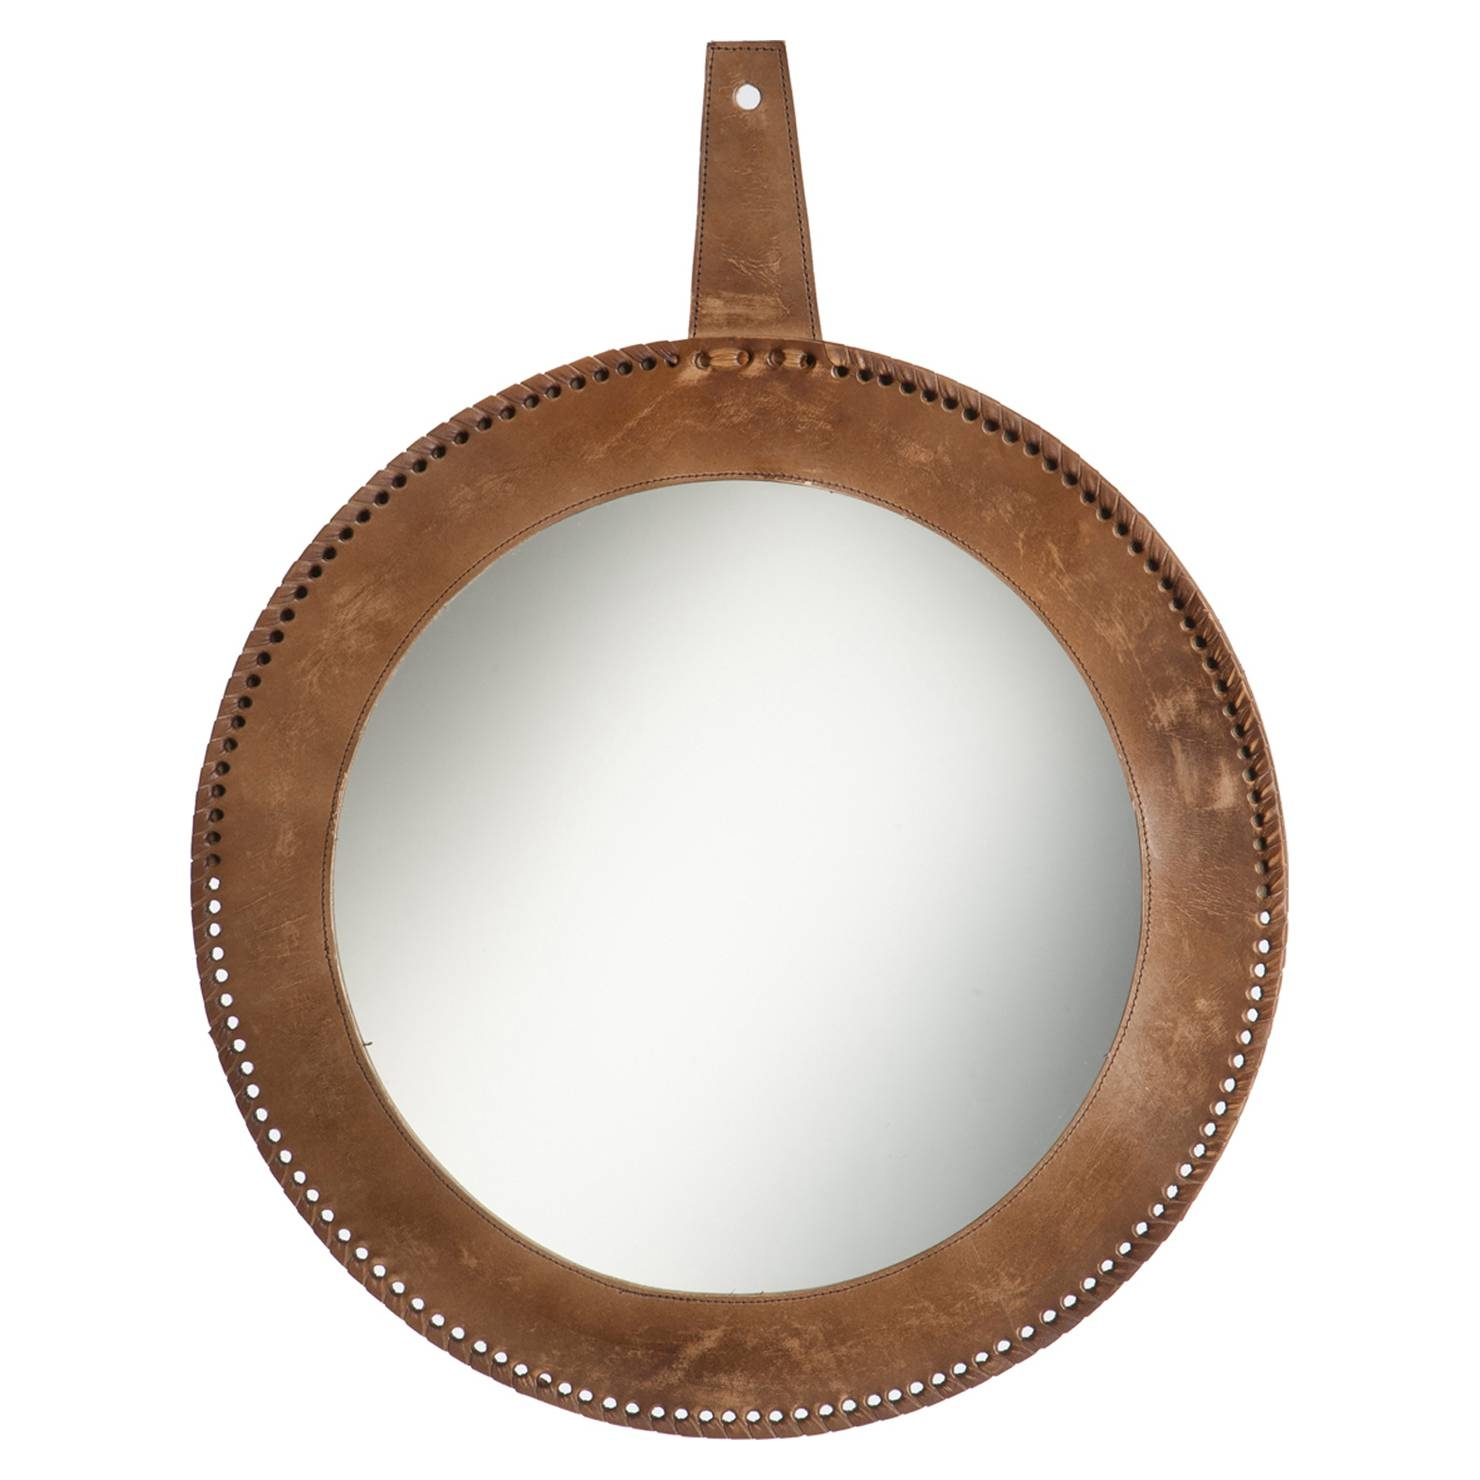 Round Leather Mirror, Brown | Achica Intended For Round Leather Mirrors (View 4 of 15)